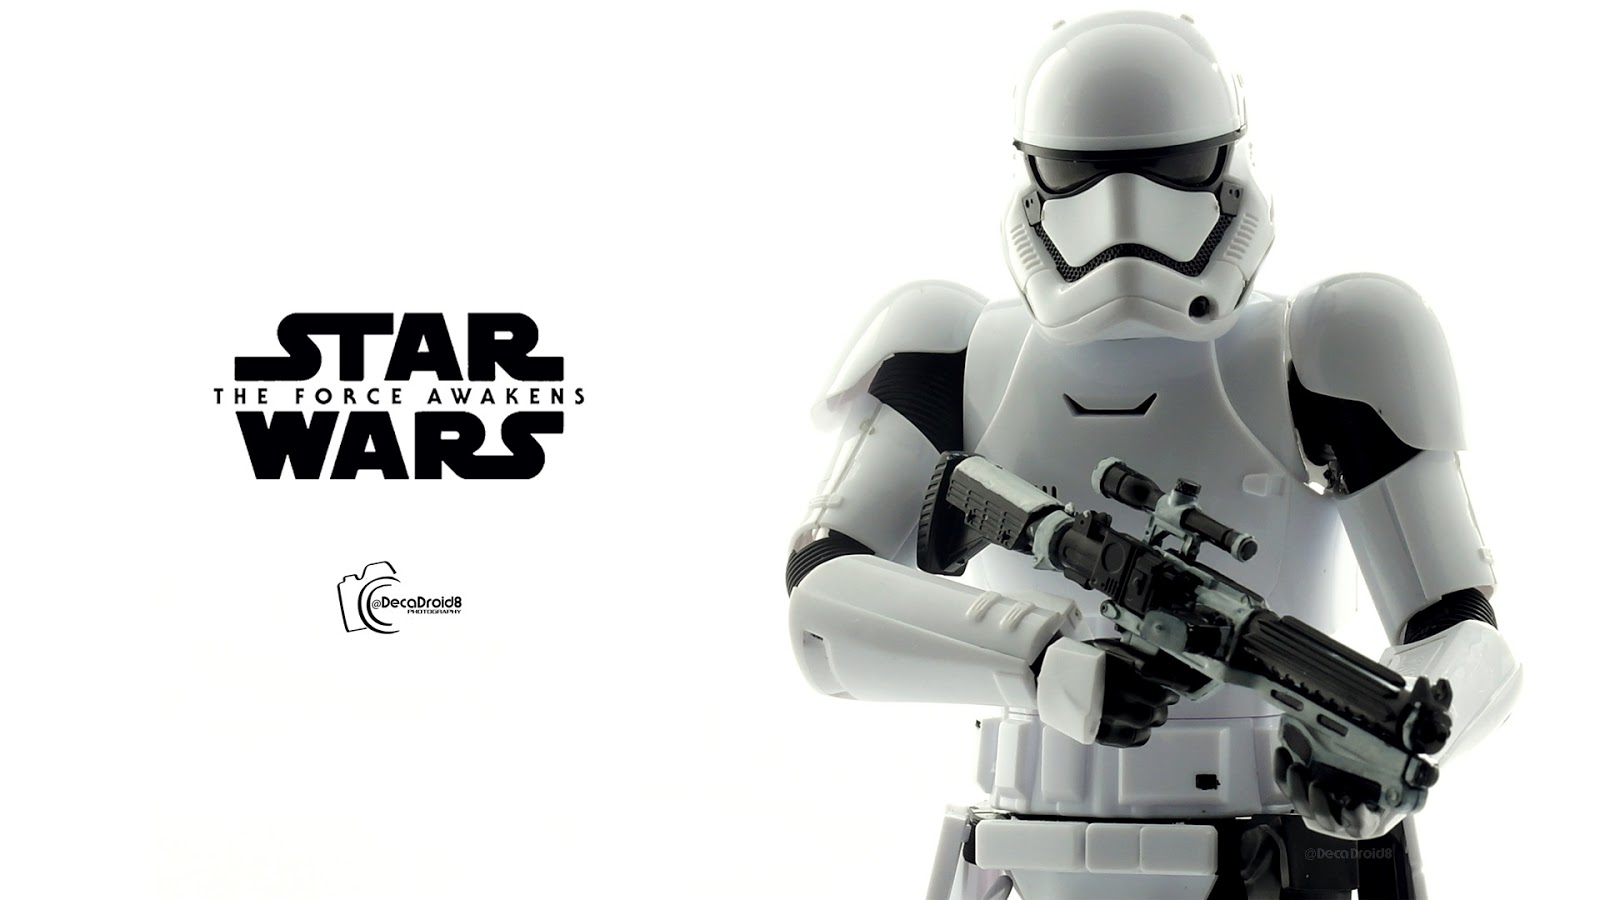 HD wallpaper Bandai 1/12 Star Wars First Order StormTrooper